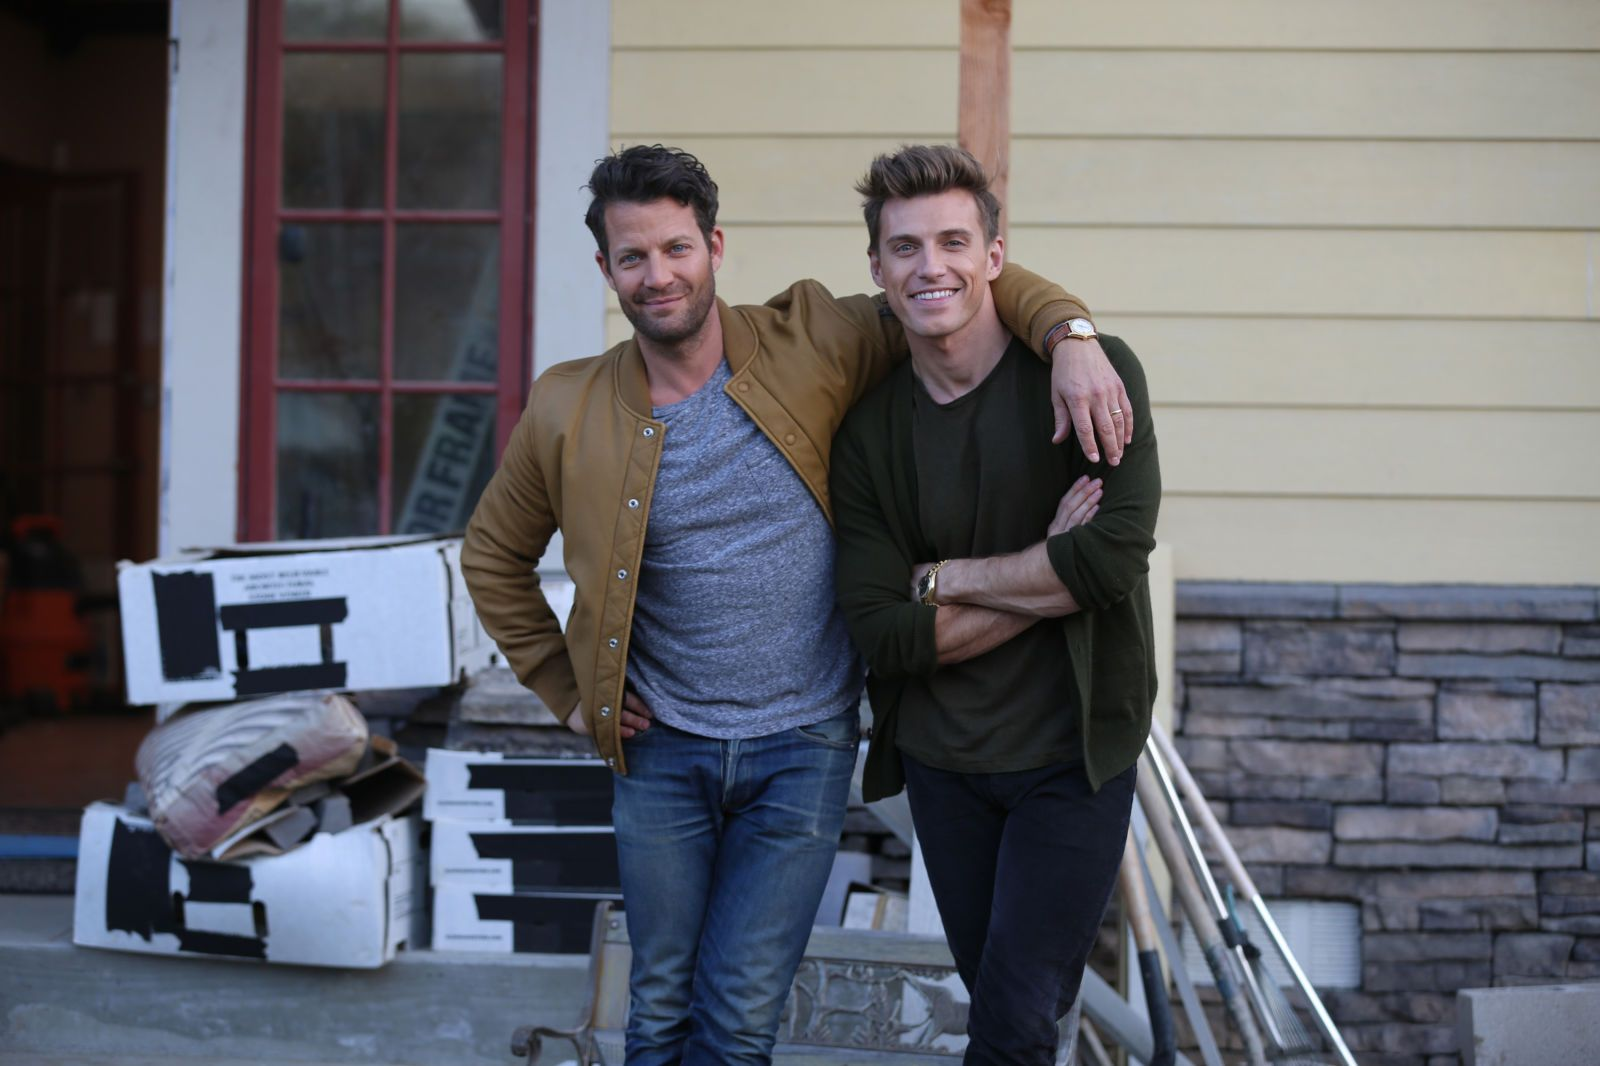 Home Makeover Shows the trailer for nate berkus and jeremiah brent's new show is here